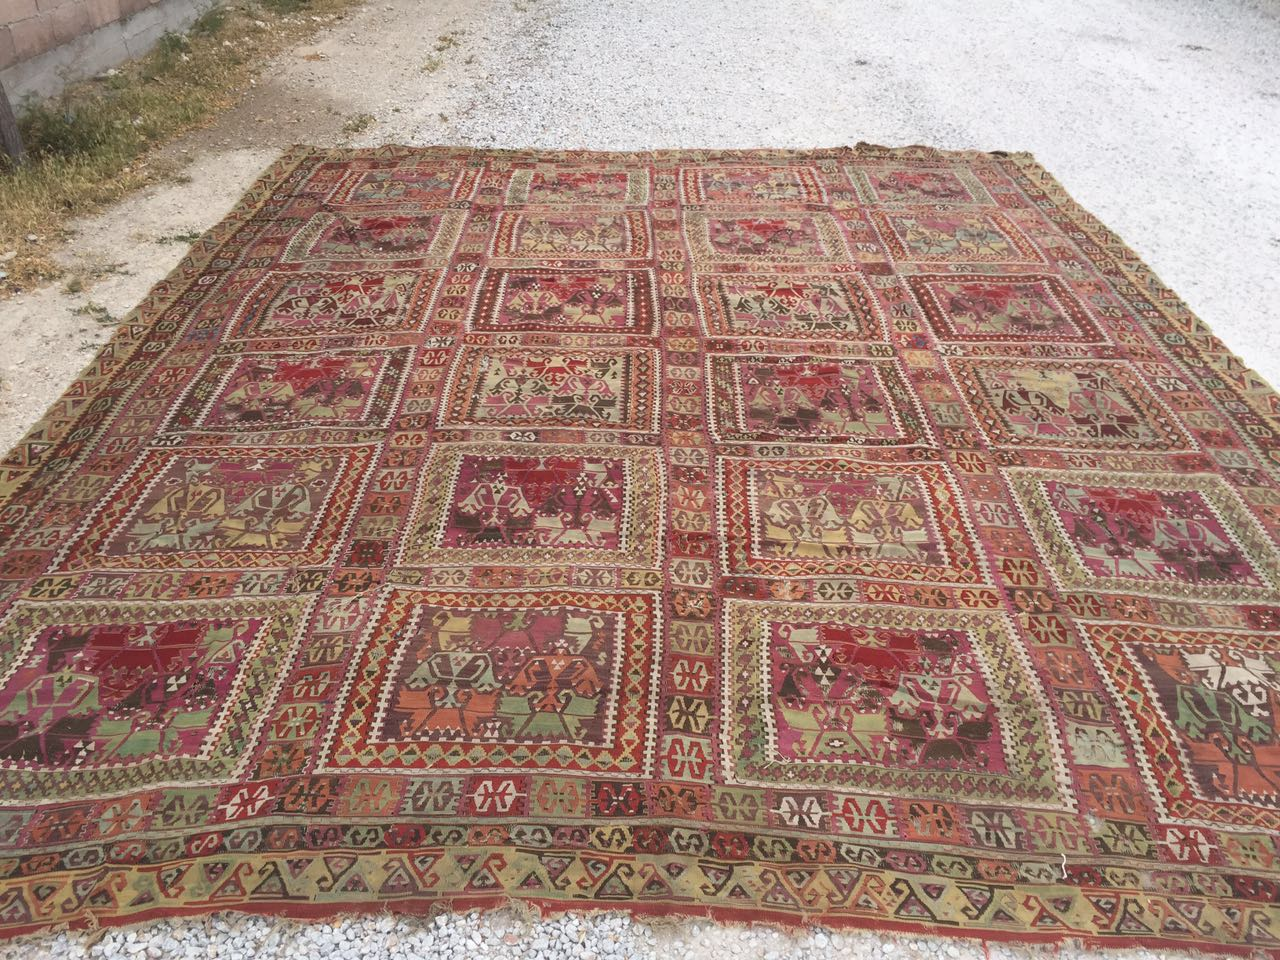 13125 Antique Anatolian kilim rug (1)